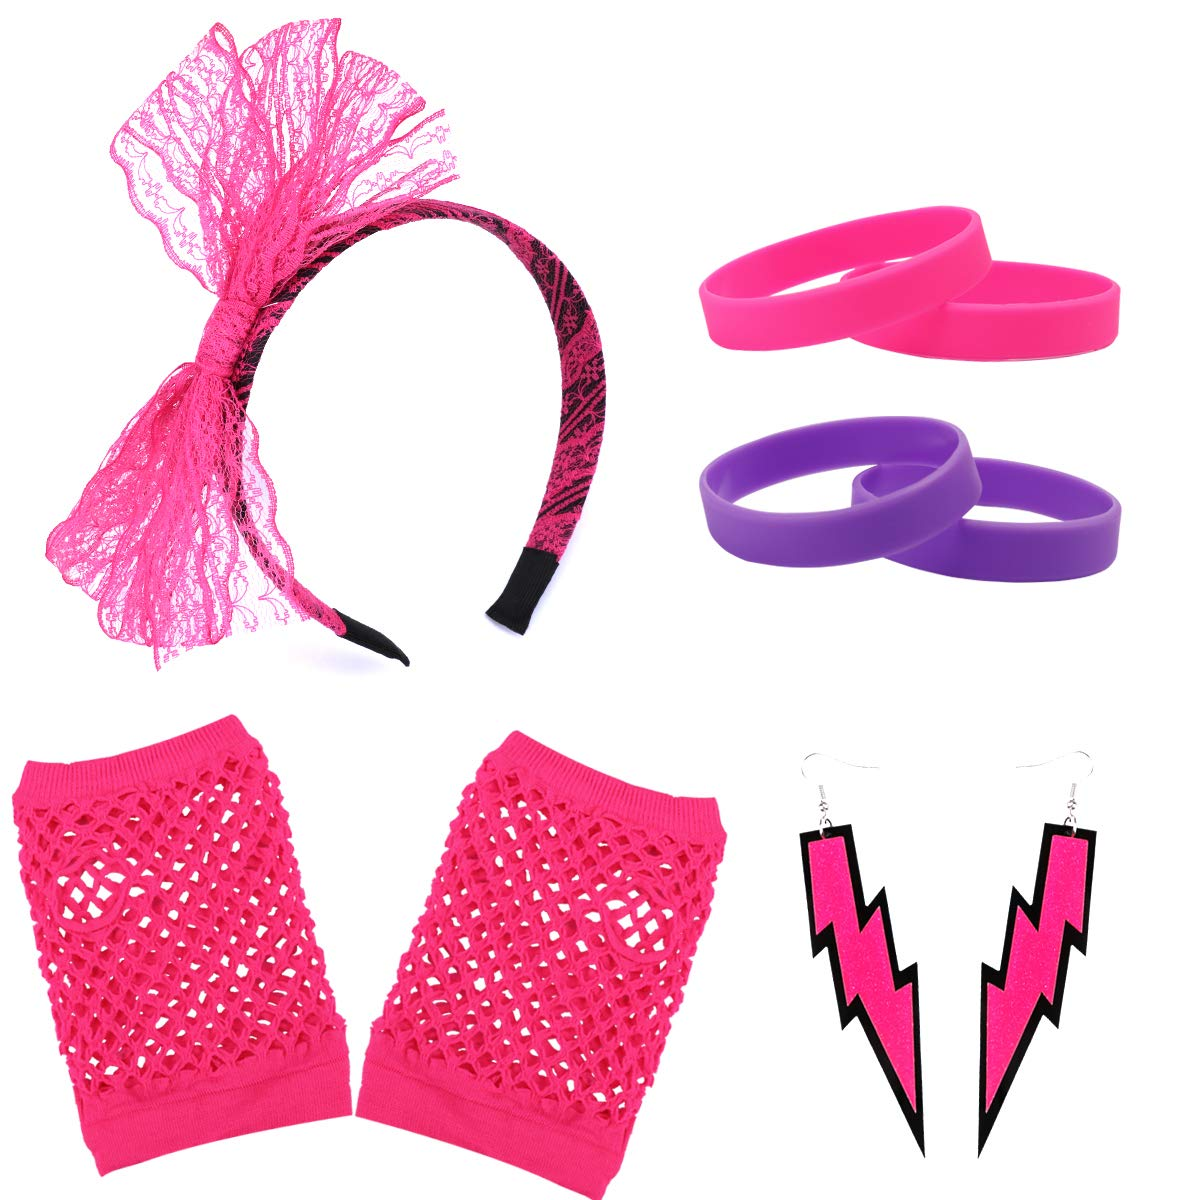 Ondder Women/'s 80s Costume Accessories Lace Headband Neon Earrings and Fishnet